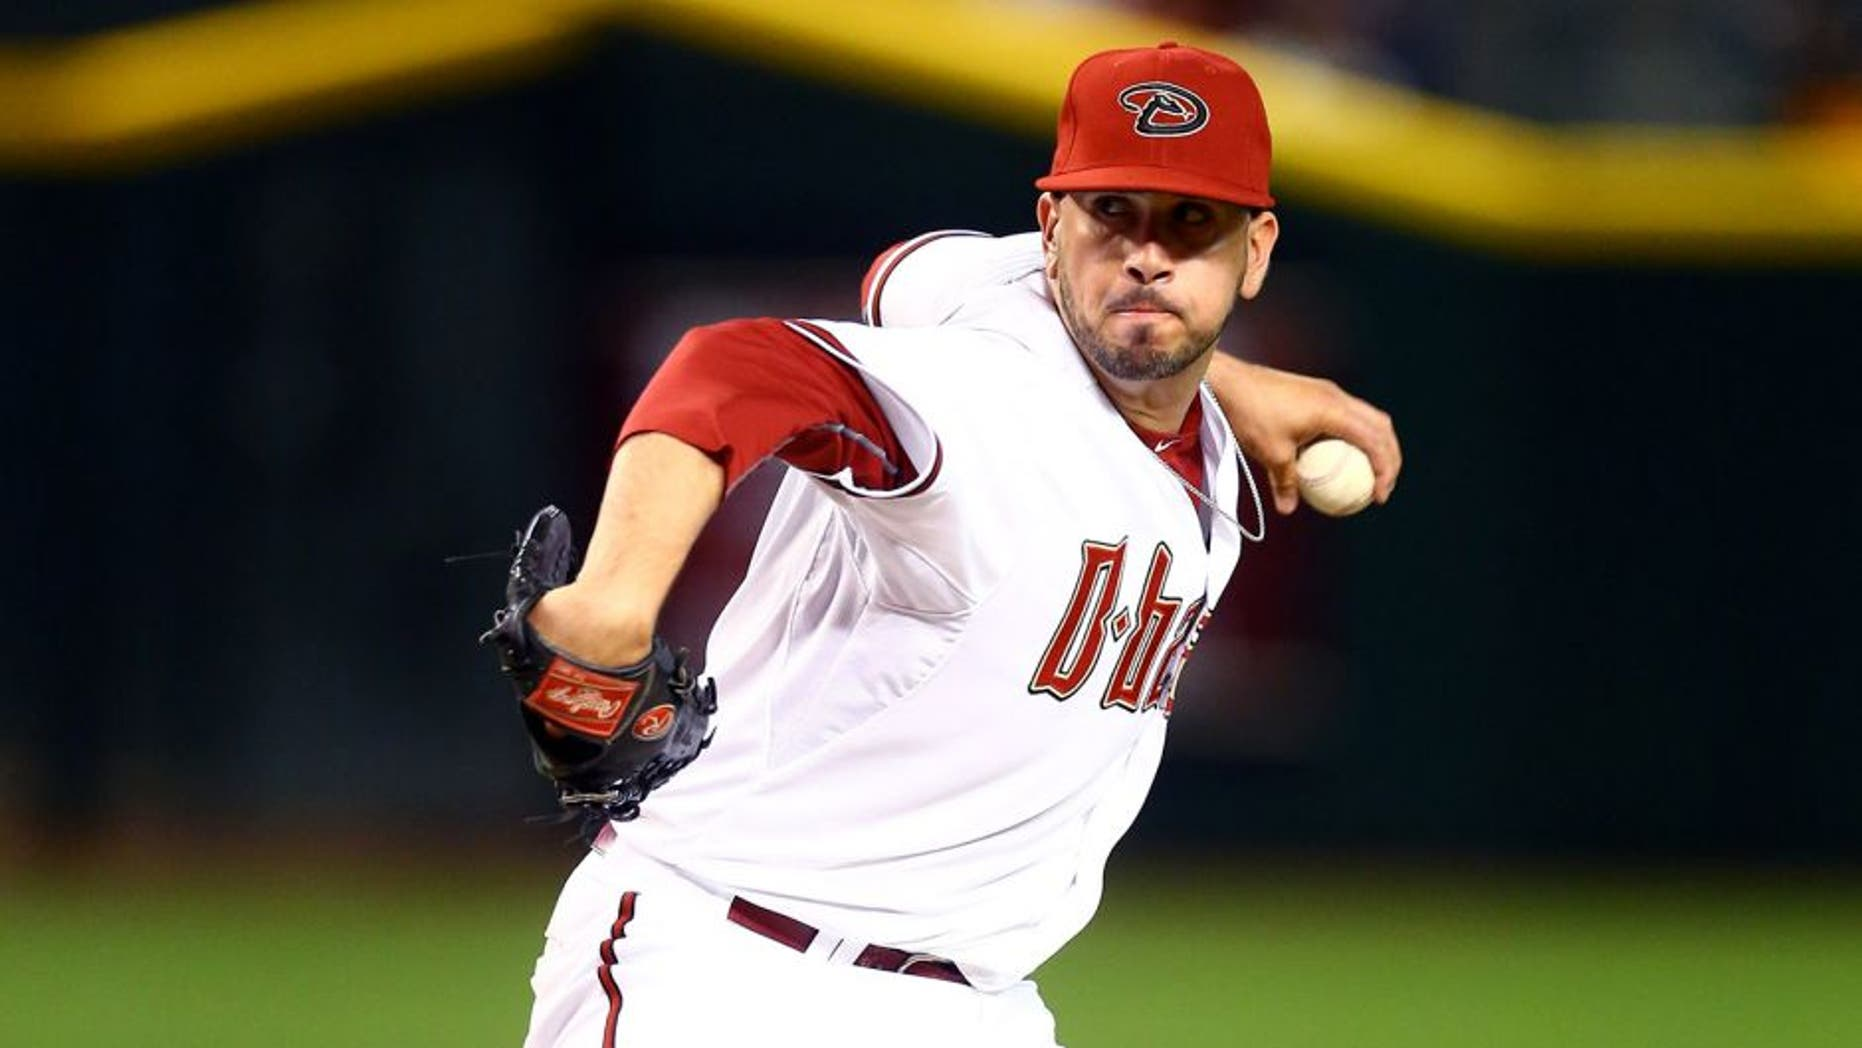 Apr 6, 2015; Phoenix, AZ, USA; Arizona Diamondbacks pitcher Oliver Perez against the San Francisco Giants during opening day at Chase Field. Mandatory Credit: Mark J. Rebilas-USA TODAY Sports